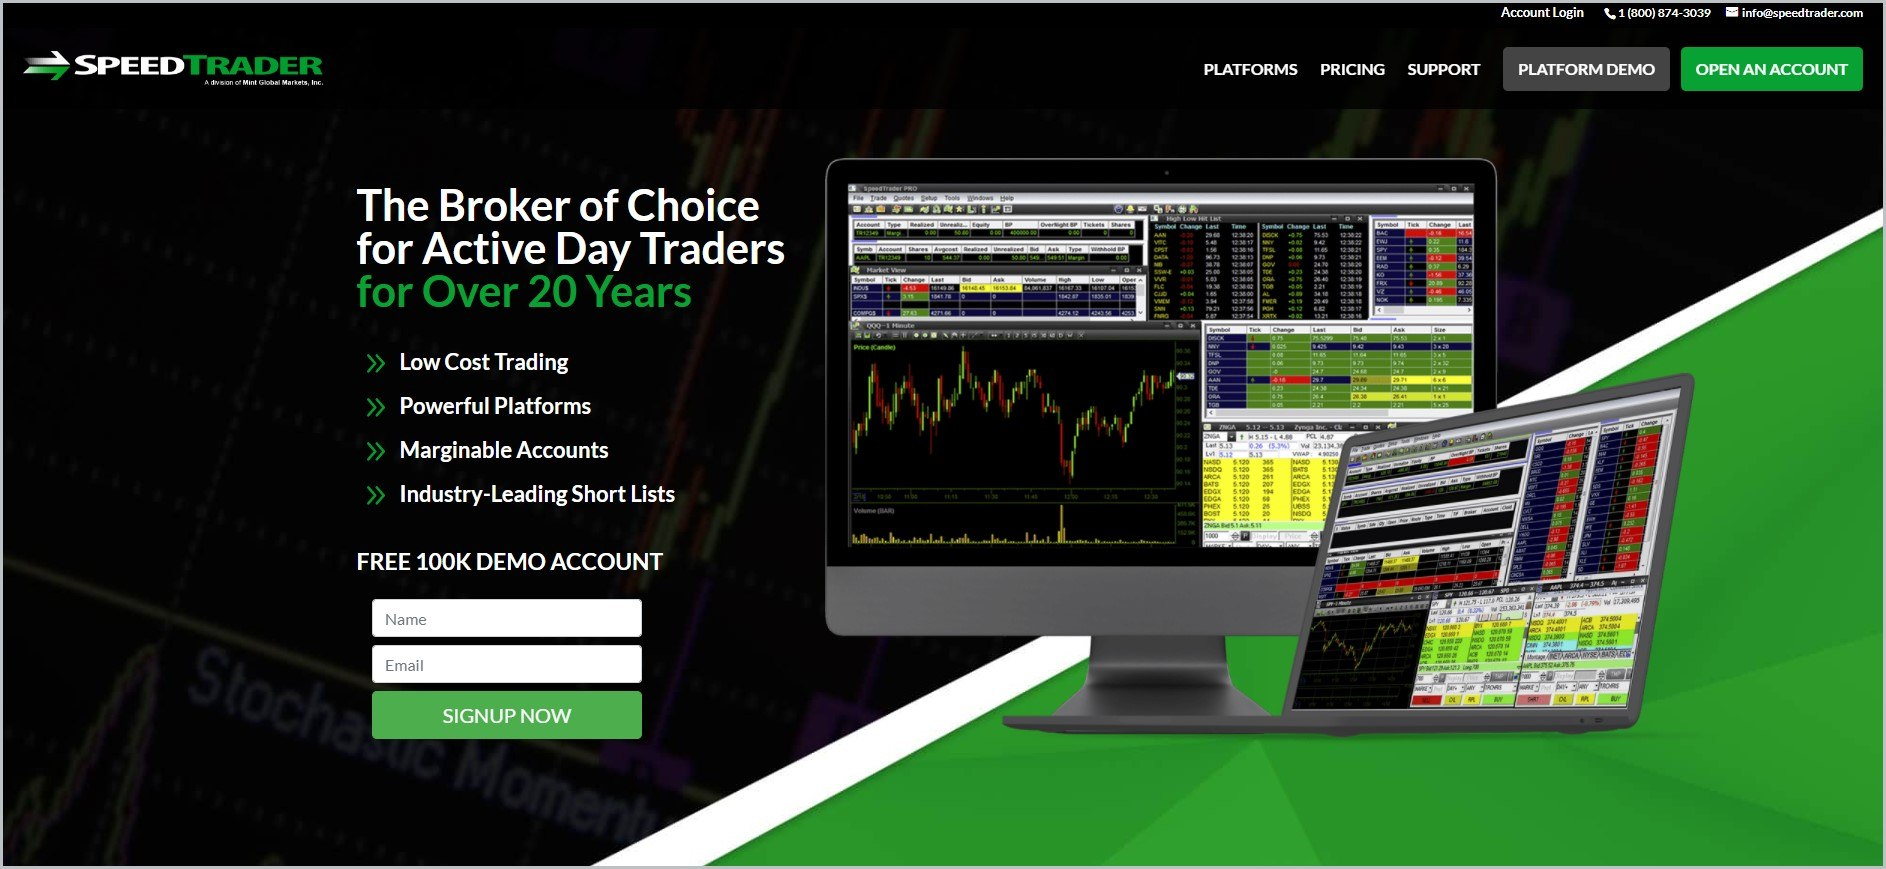 screenshot of SpeedTrader homepage showcasing an image of one of their trading platforms